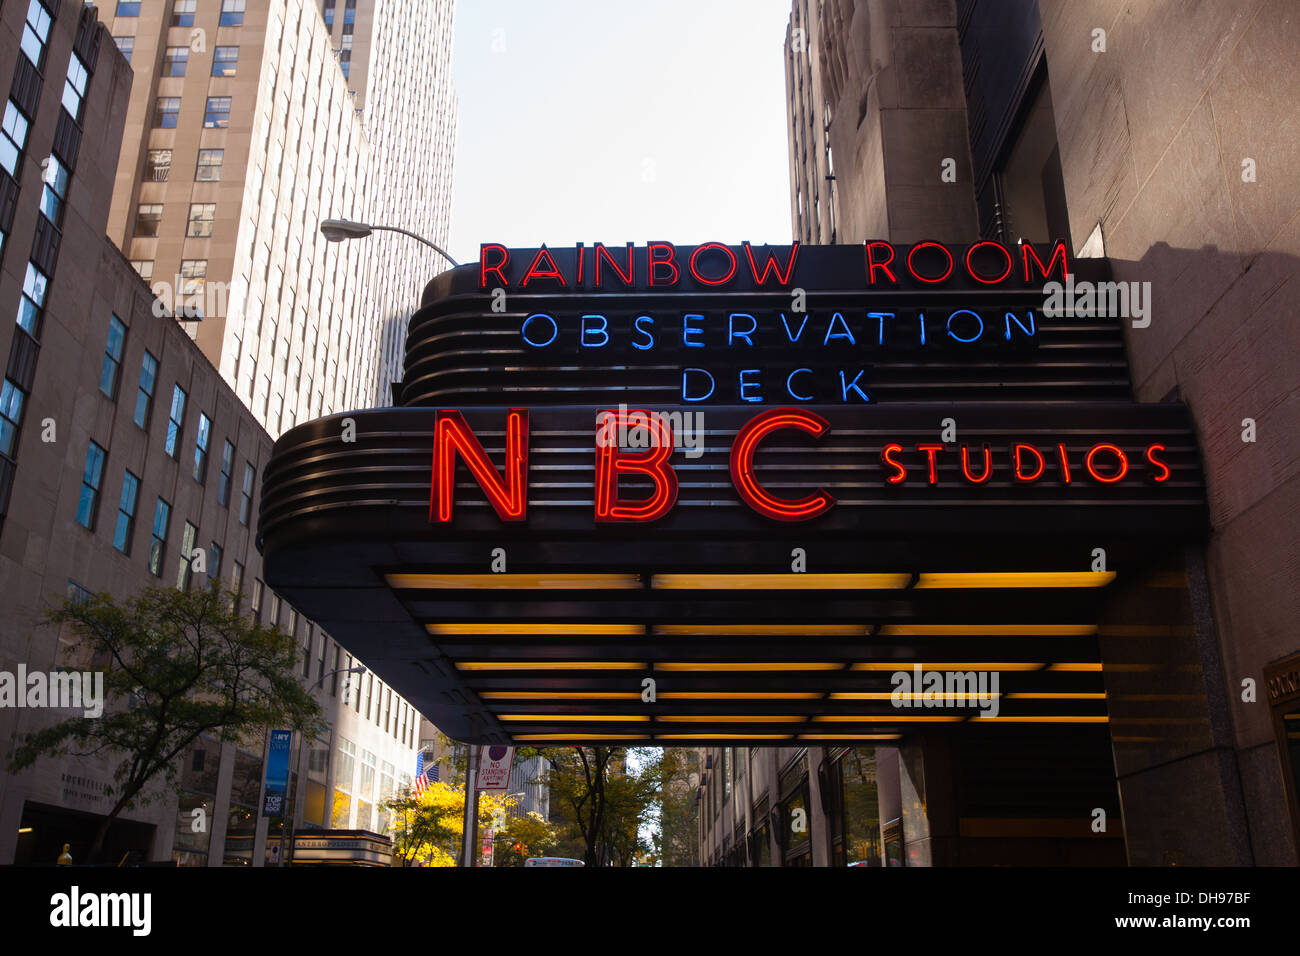 NBC Studios at the Rockefeller Center, New York City, United States of America. - Stock Image